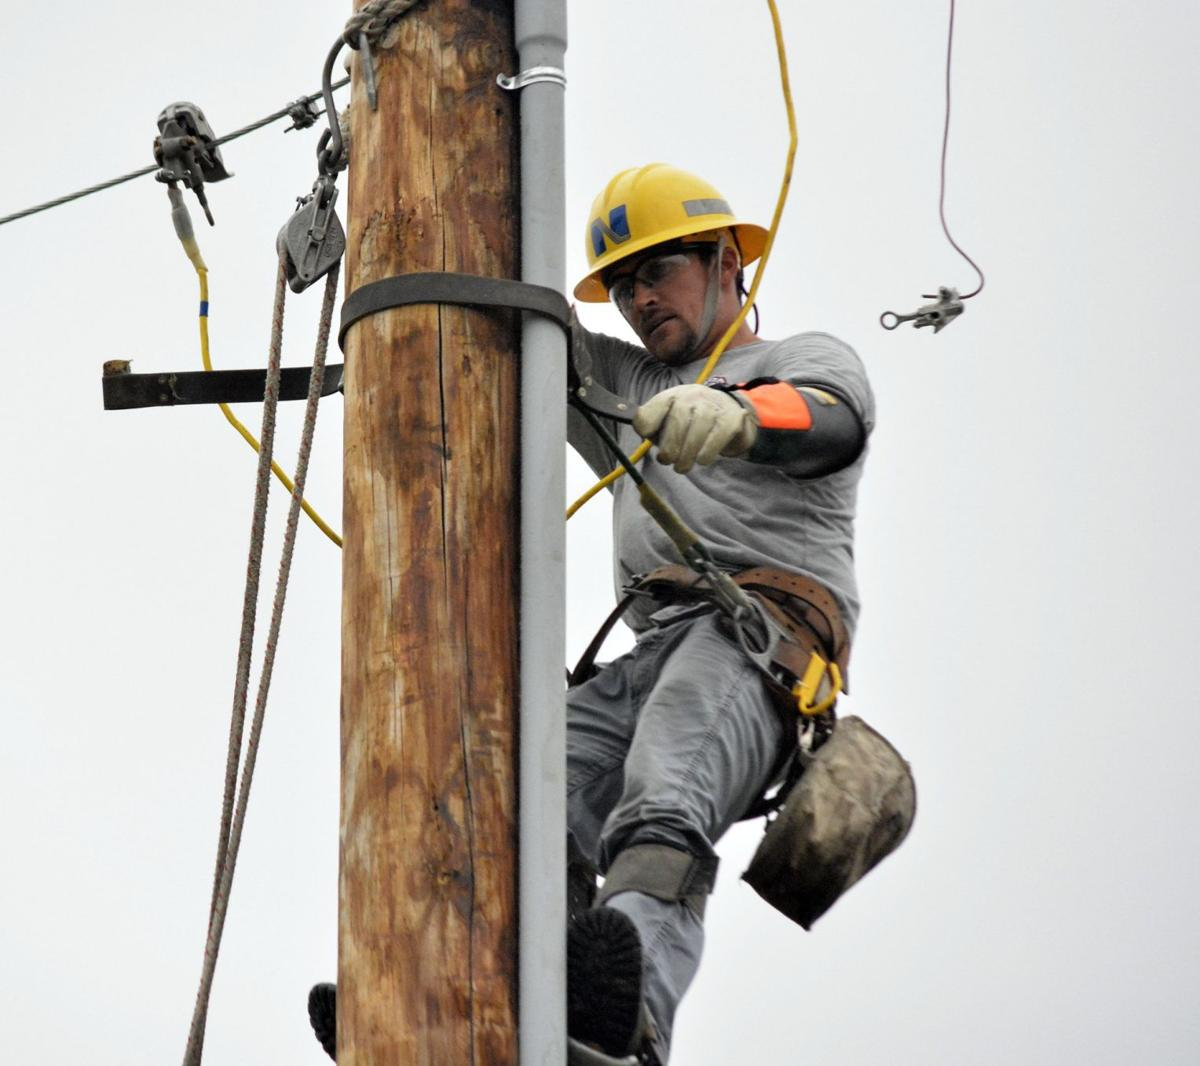 Powerline workers used to inclement weather | Local News ...